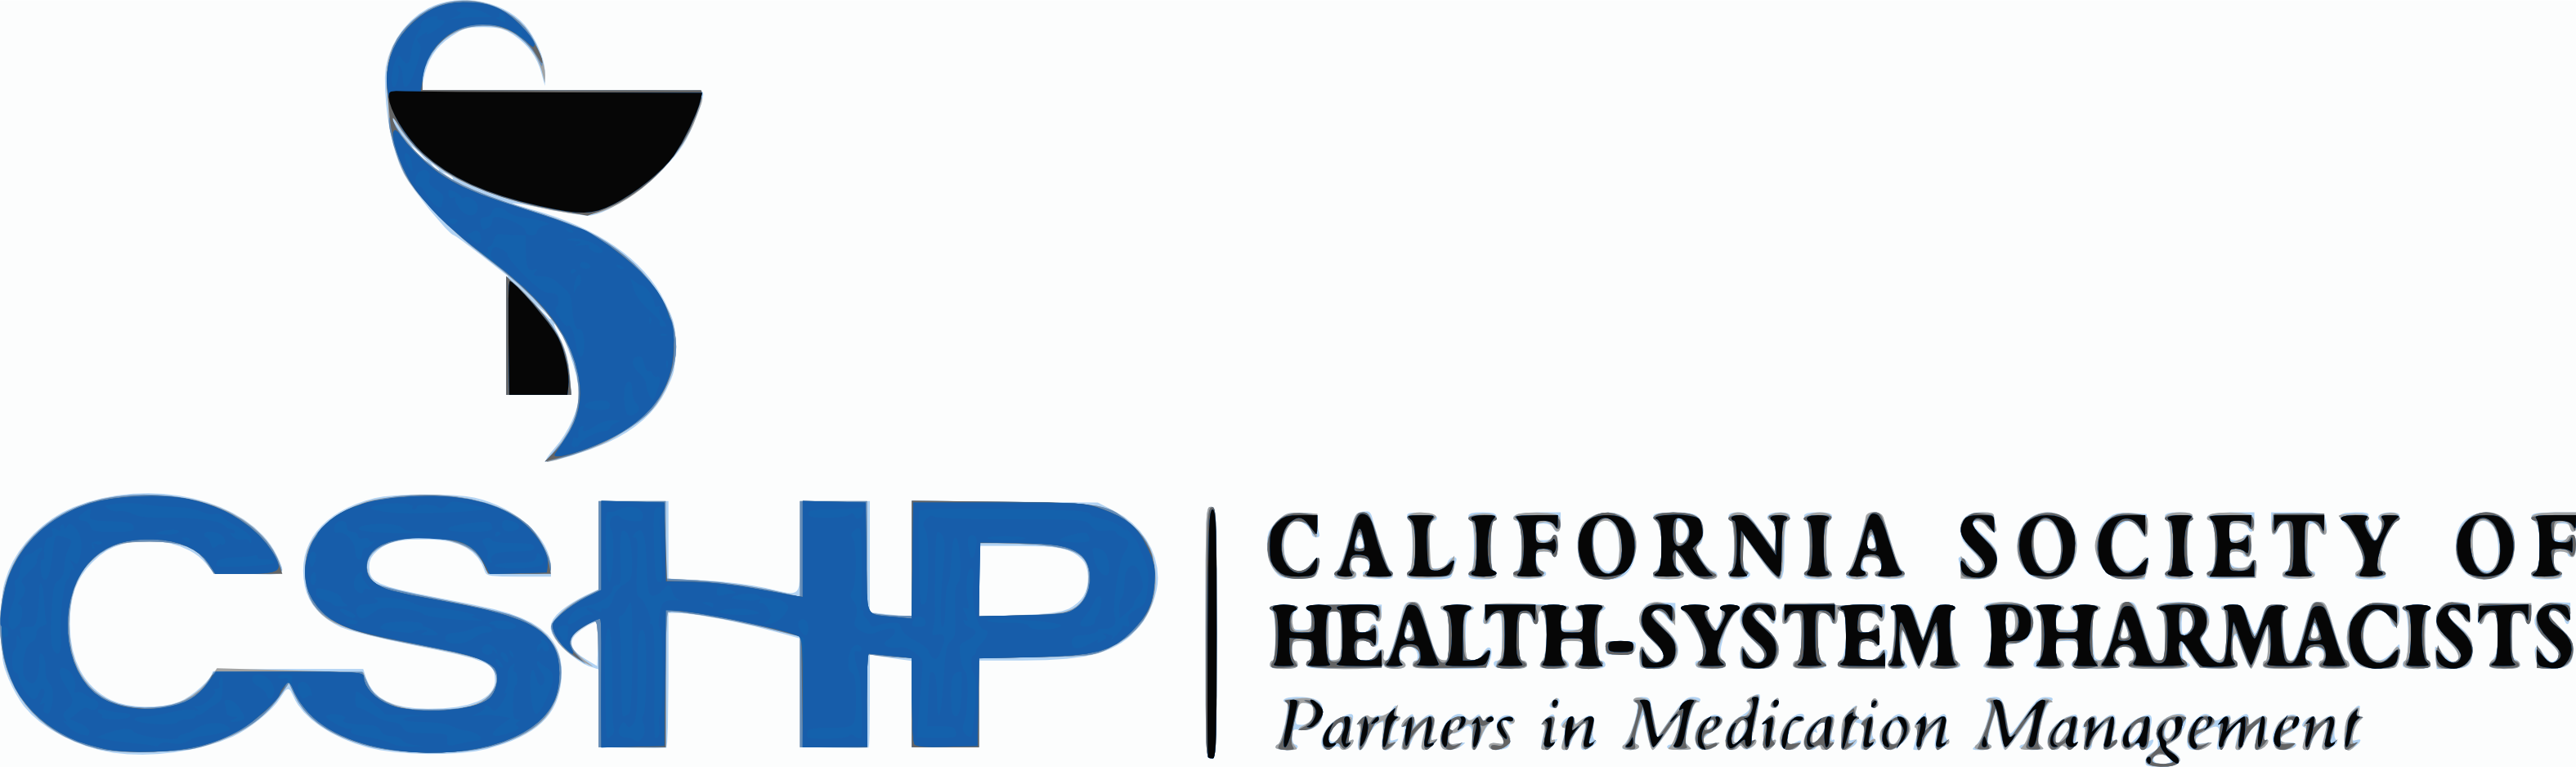 Press release ashp letter of support on sb 716 california california society of health system pharmacists xflitez Images